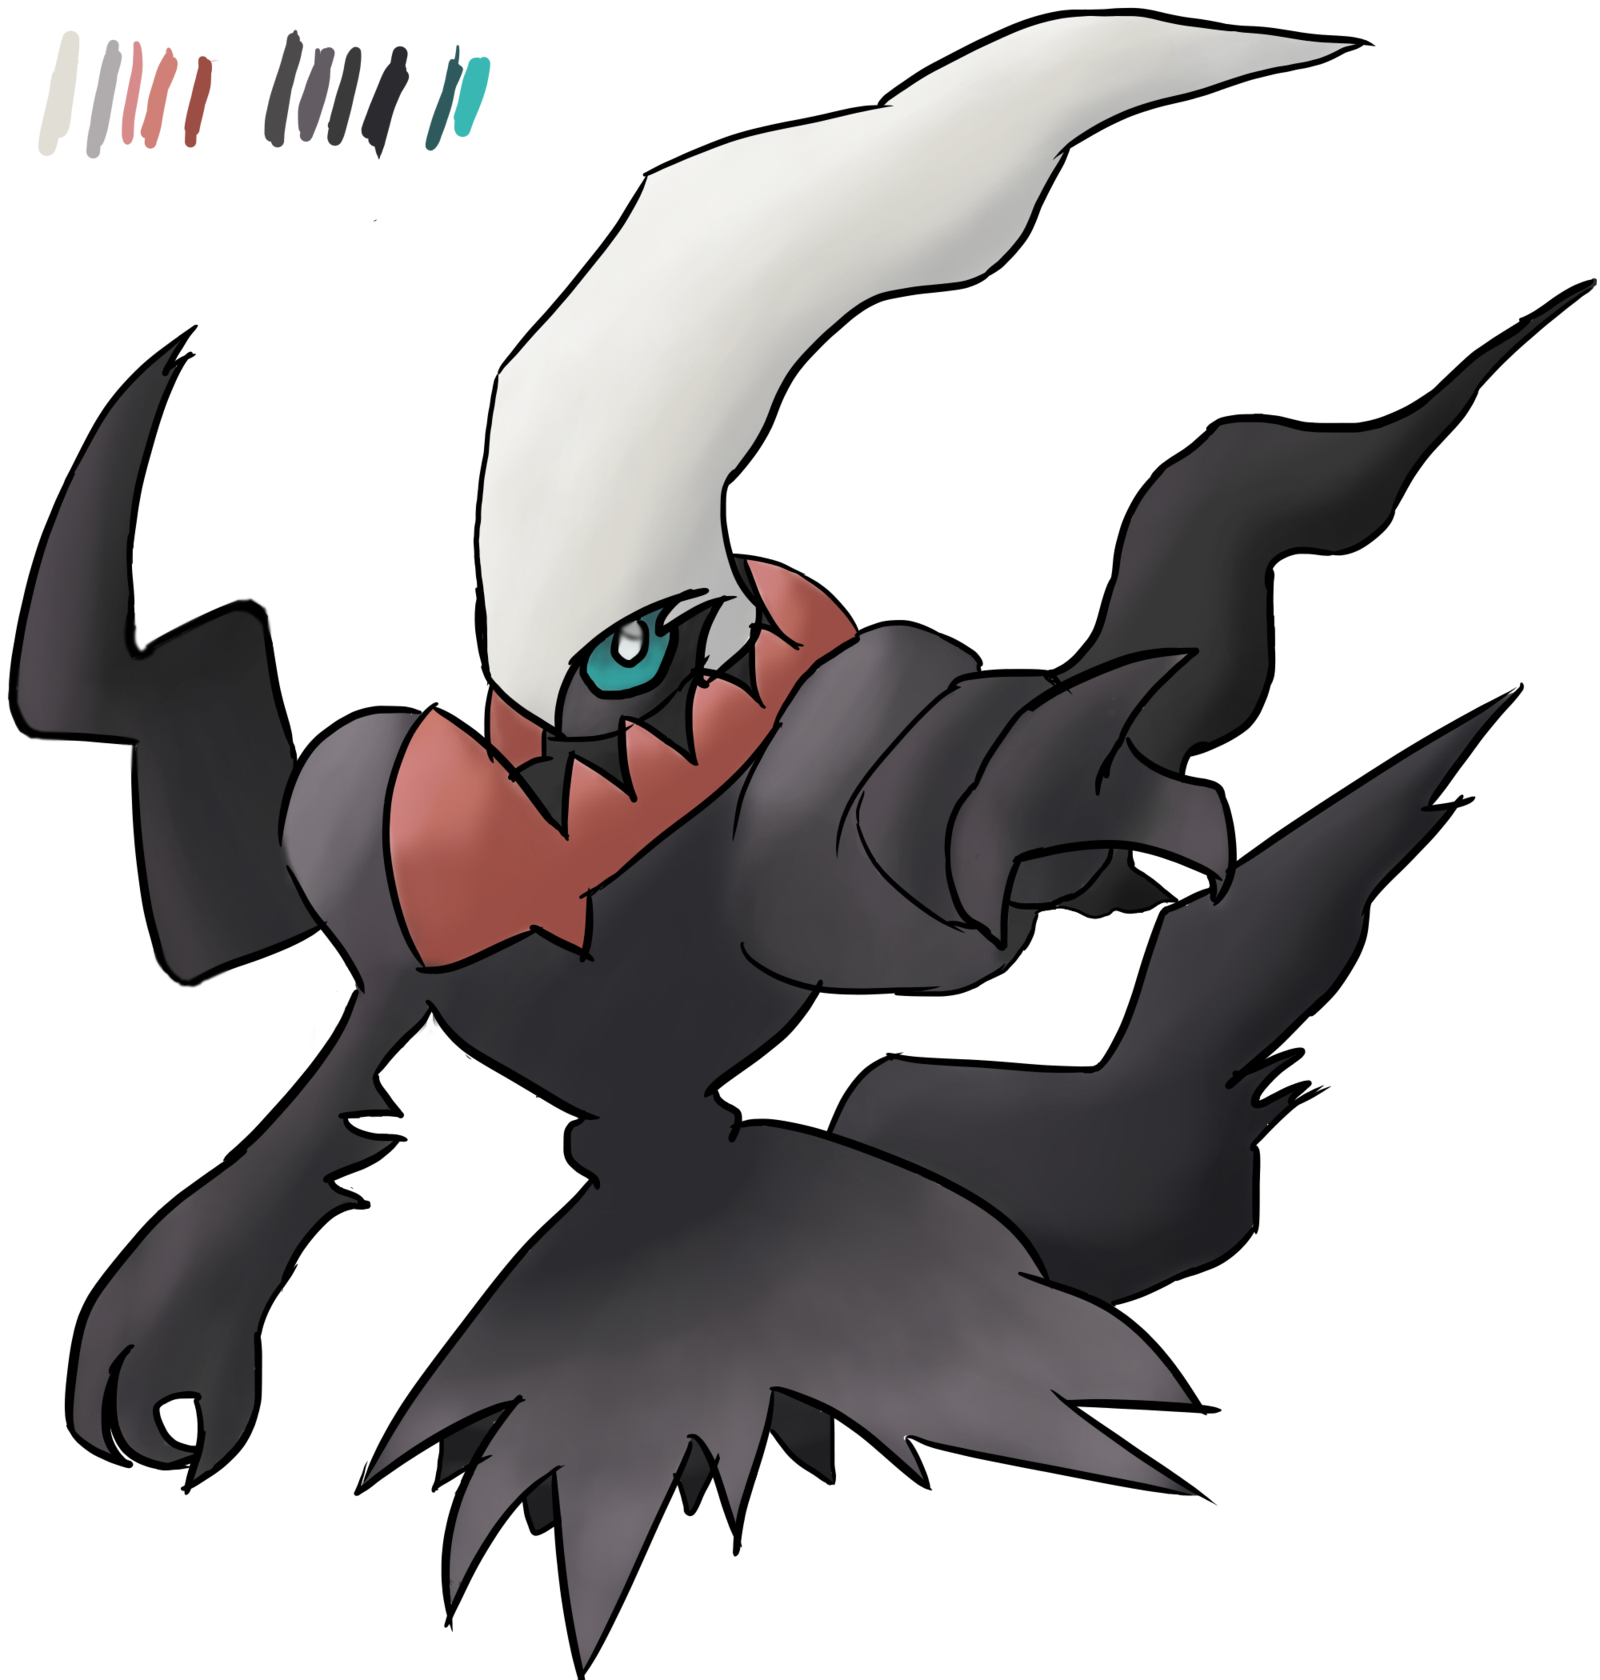 Darkrai drawing character. For masterhawki by fbmstar